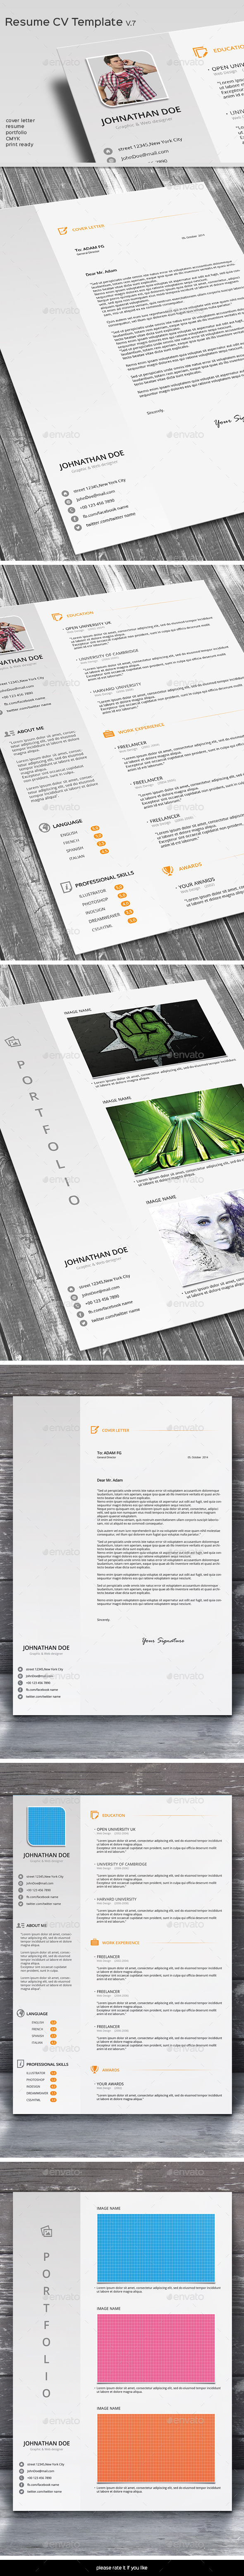 GraphicRiver Resume CV Template V.7 9305706